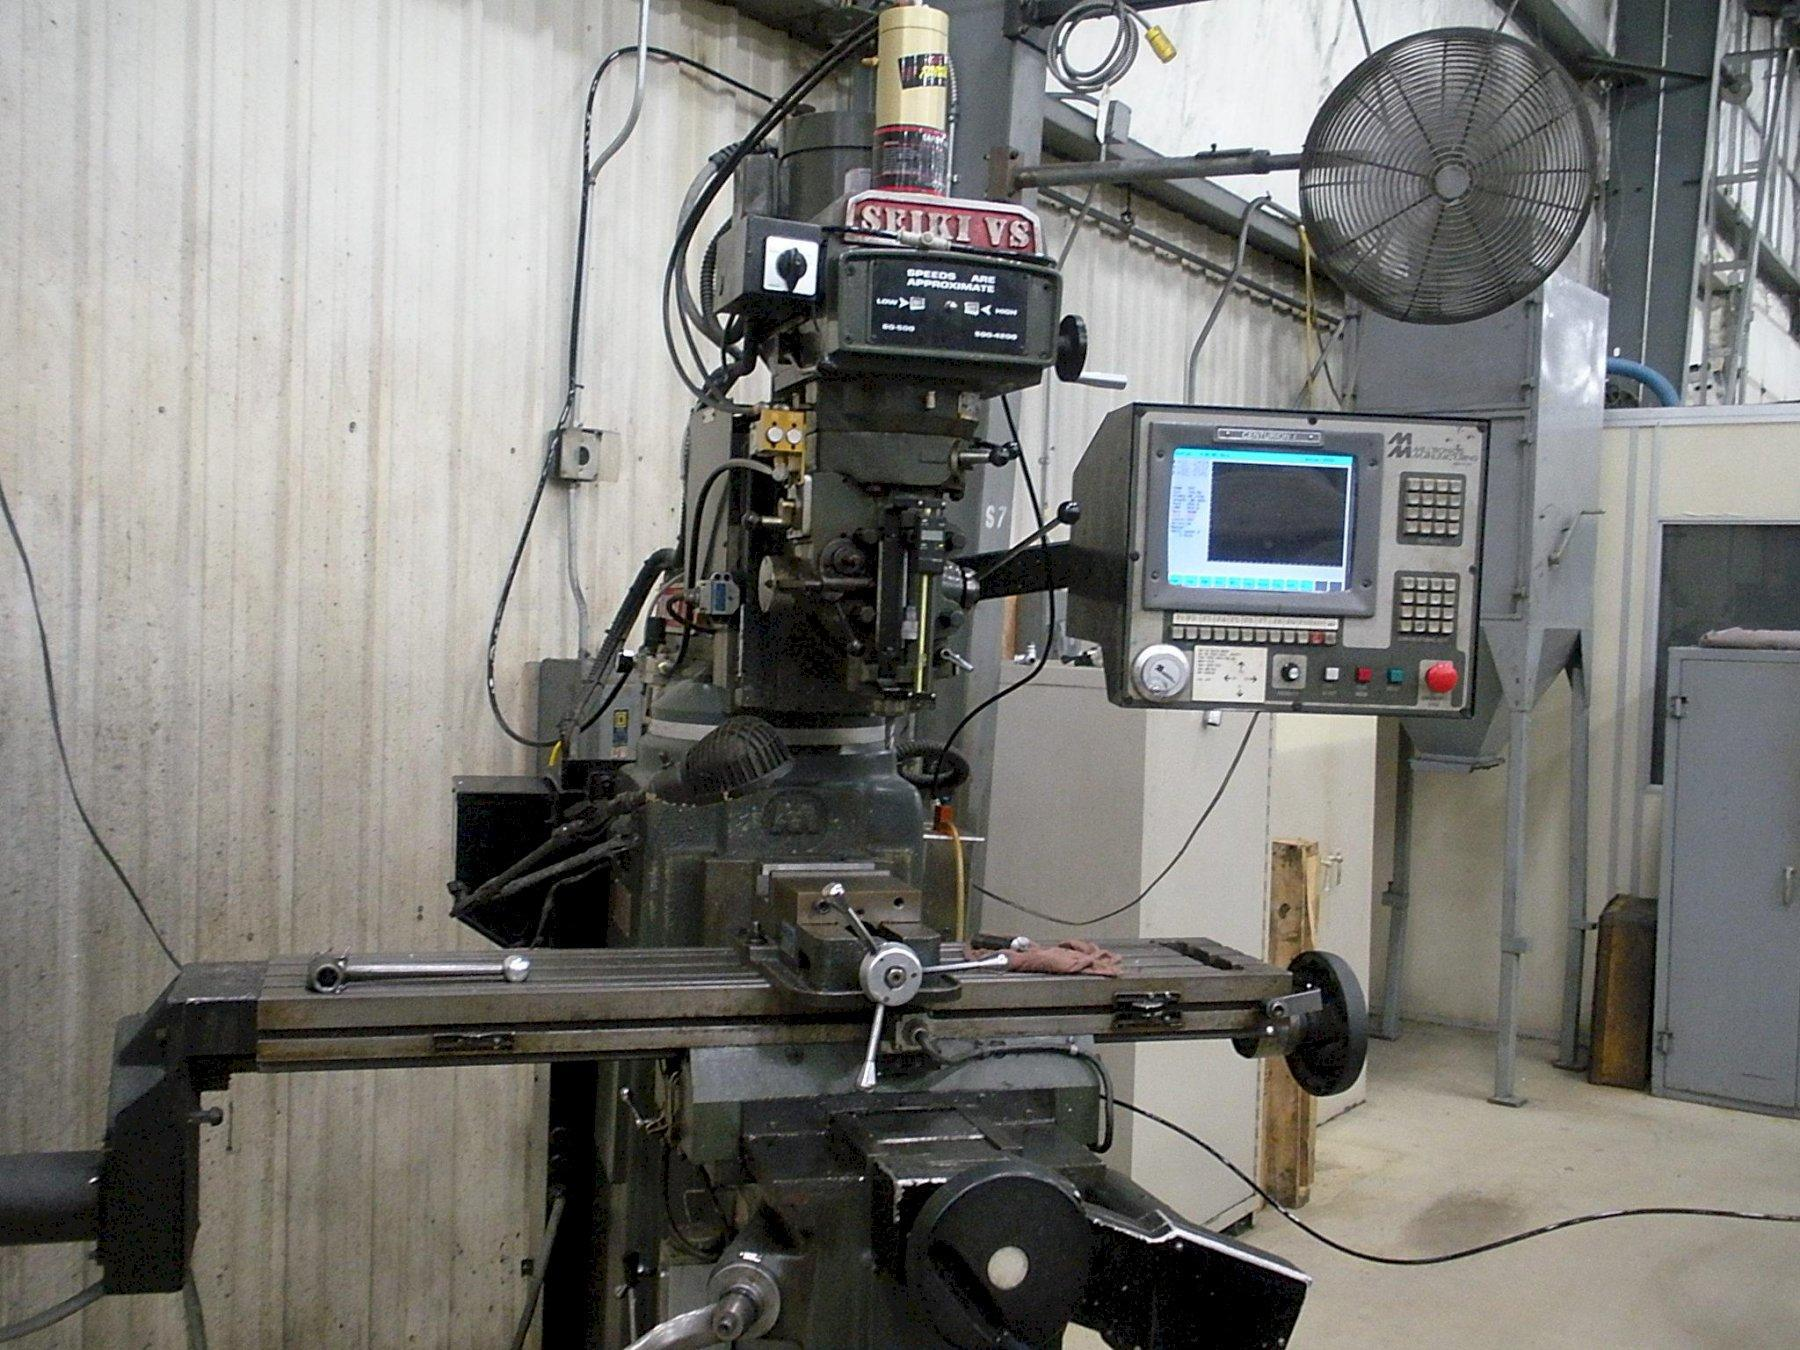 Seiki 4VS 3-Axis CNC Variable Speed Vertical Knee Mill, S/N 9474, New 1998.